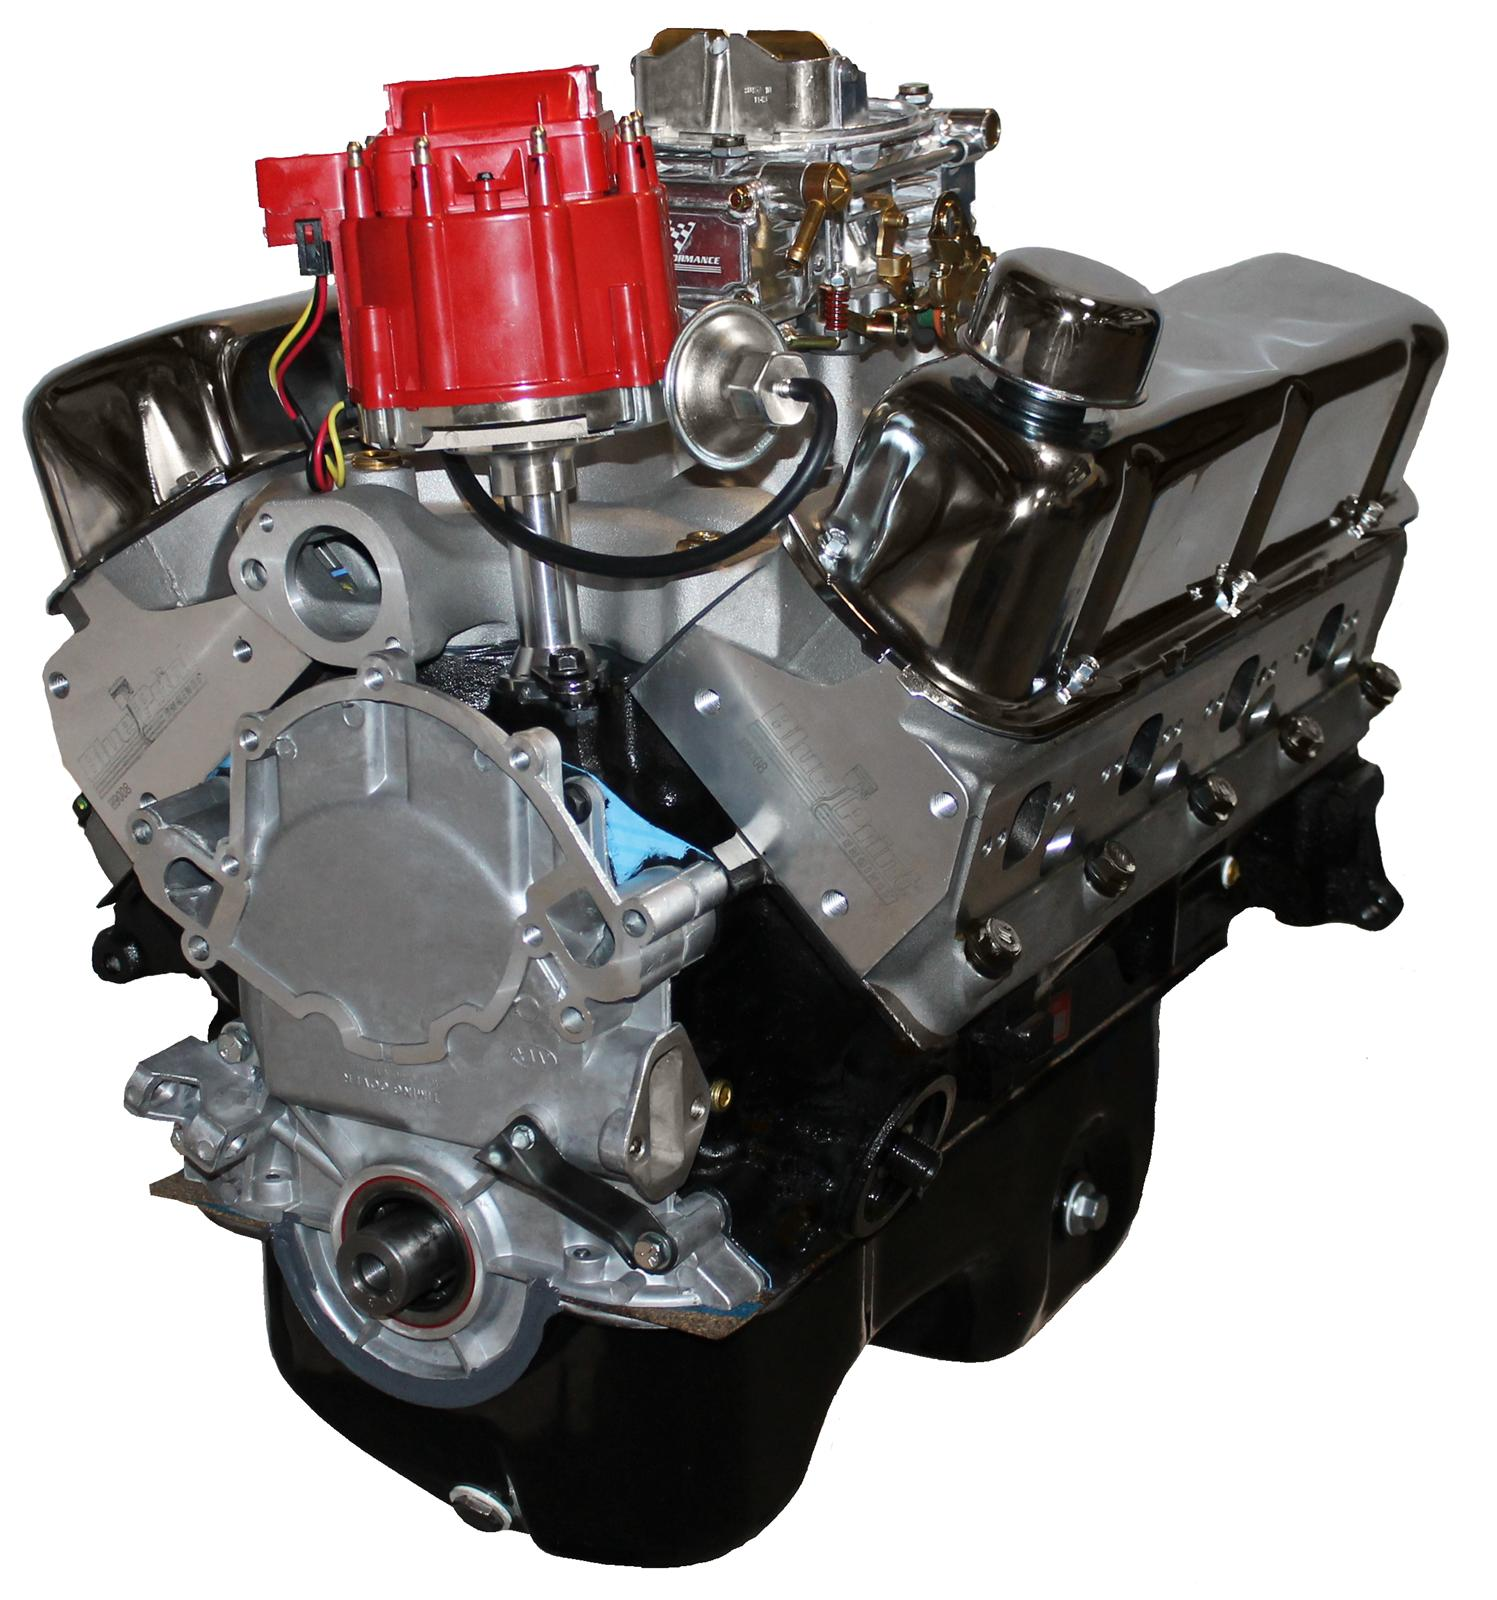 hight resolution of blueprint engines ford 347 c i d 415 hp dressed stroker long block crate engines bp3474ctc free shipping on orders over 99 at summit racing